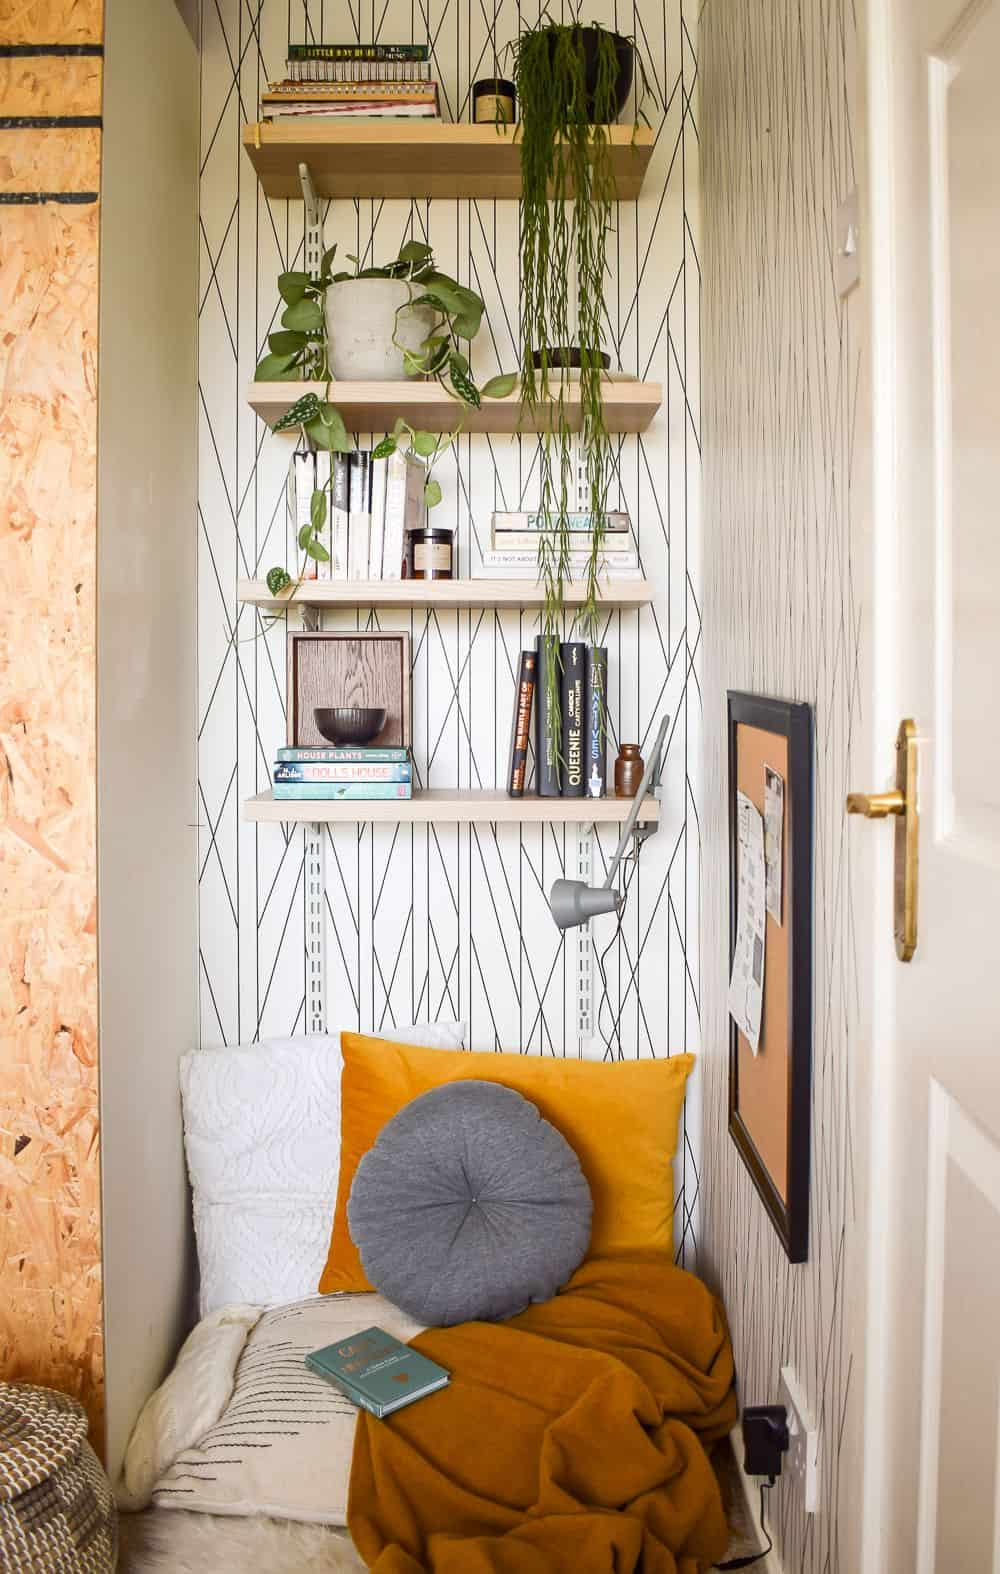 7 Tried And Tested Bedroom Storage Tips To Maximize Your Space A Beautiful Mess